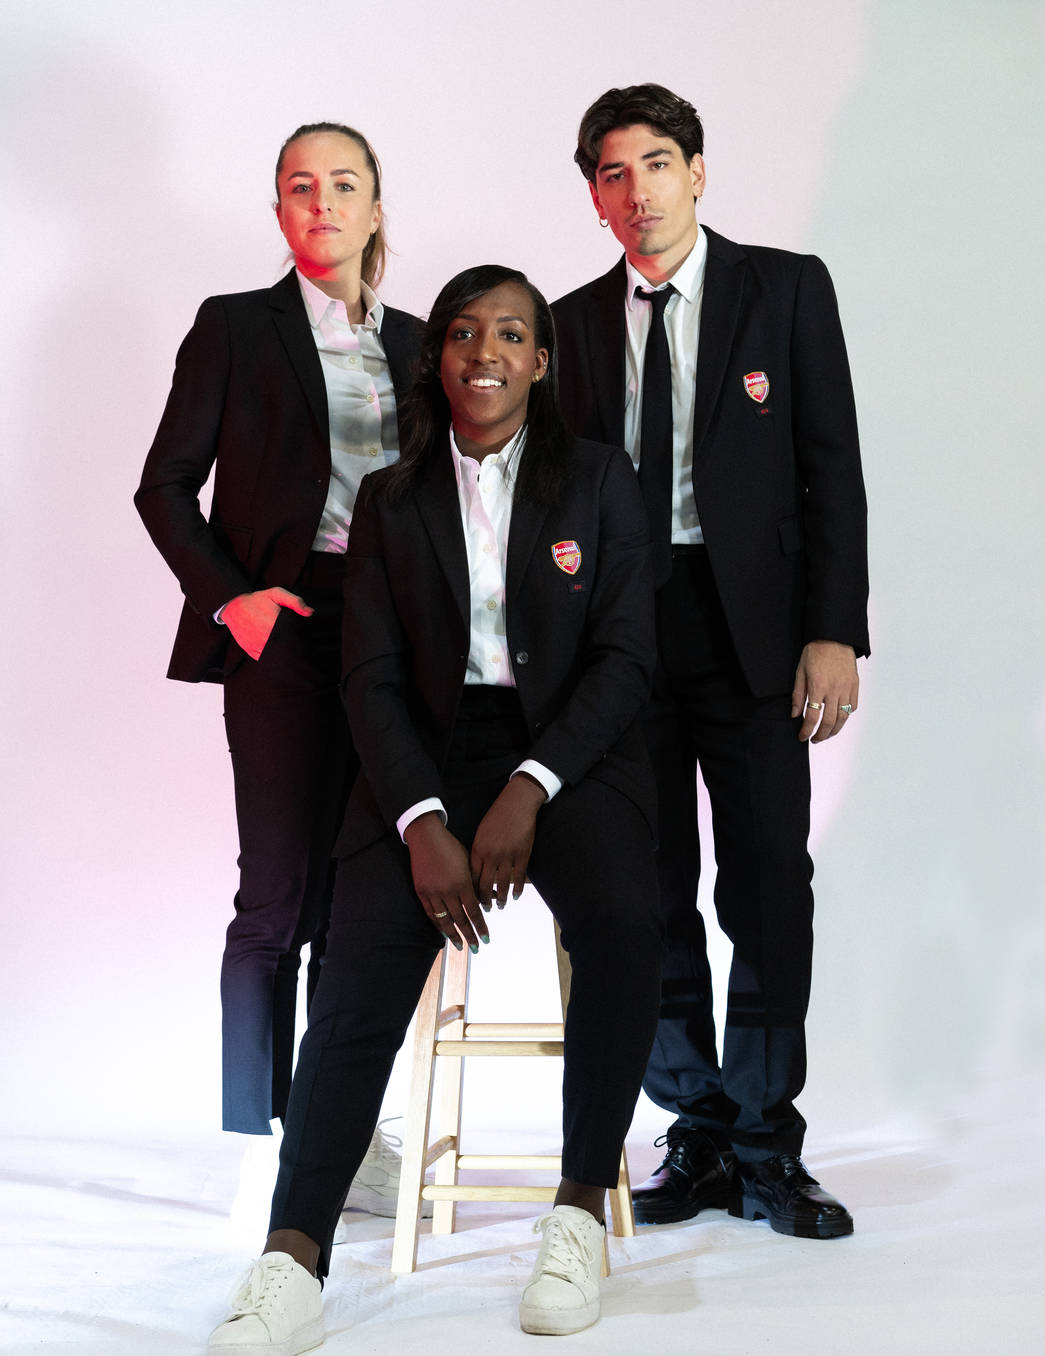 arsenal women to wear 424 suits for the